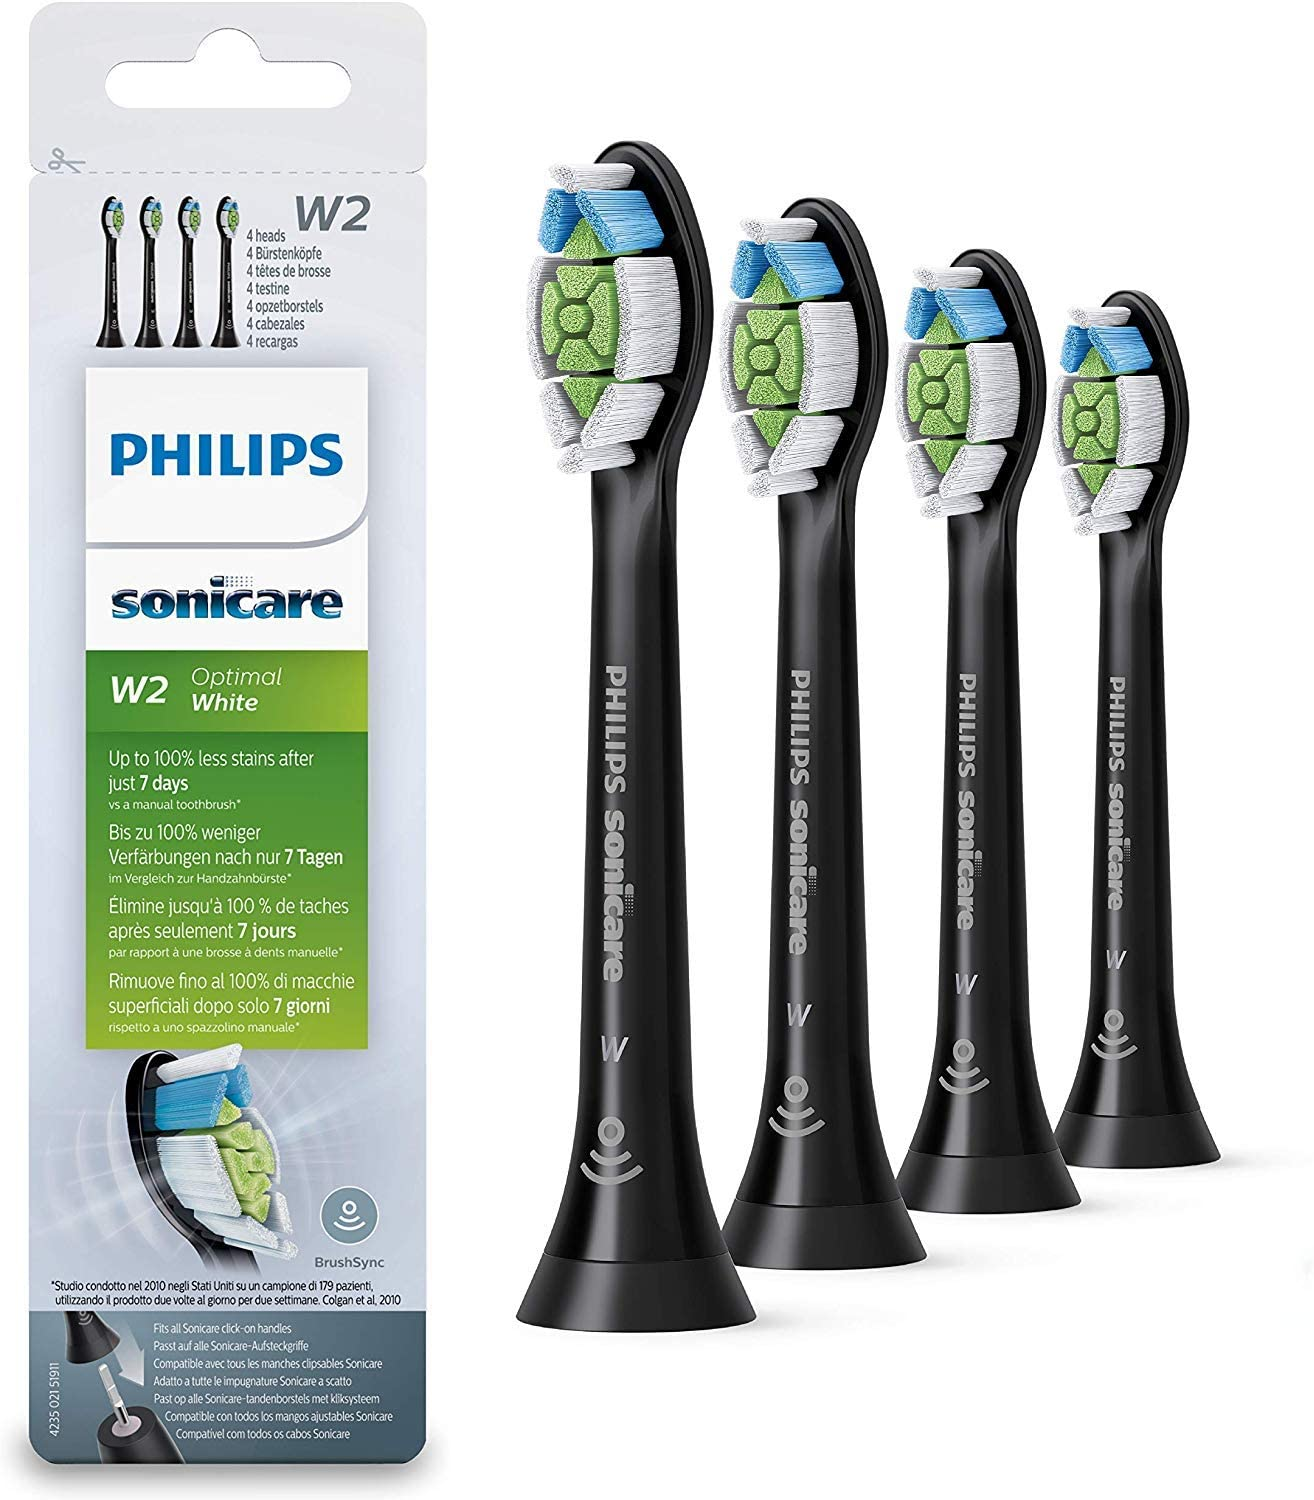 Philips HX6064/11 - Pack con 4 cabezales Optimal White para cepillos Sonicare, color negro: Amazon.es: Salud y cuidado personal